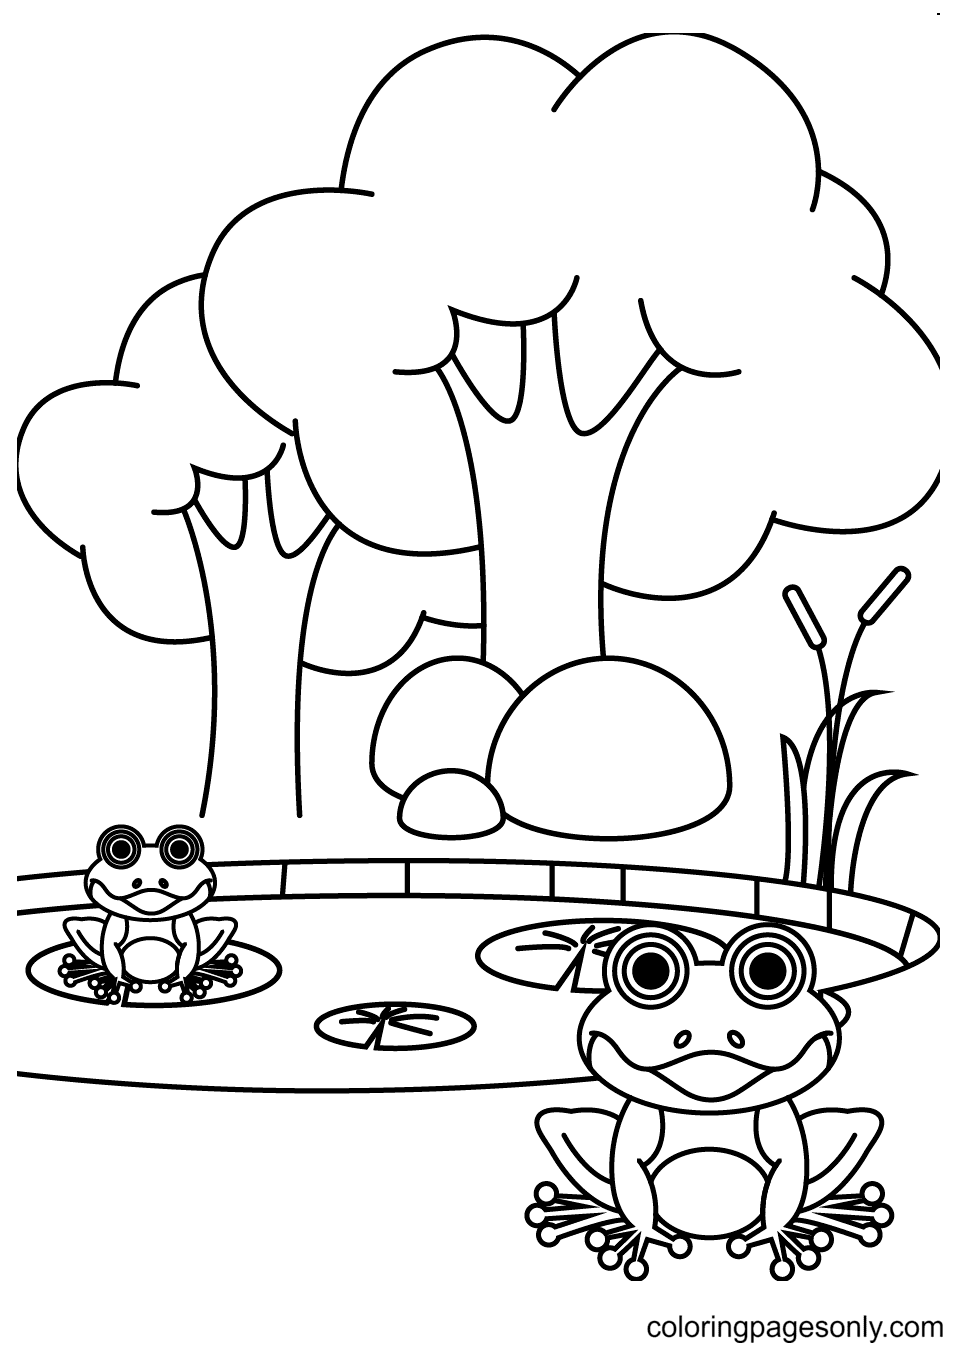 Two Cute Frogs Relaxing On a Pond Coloring Page